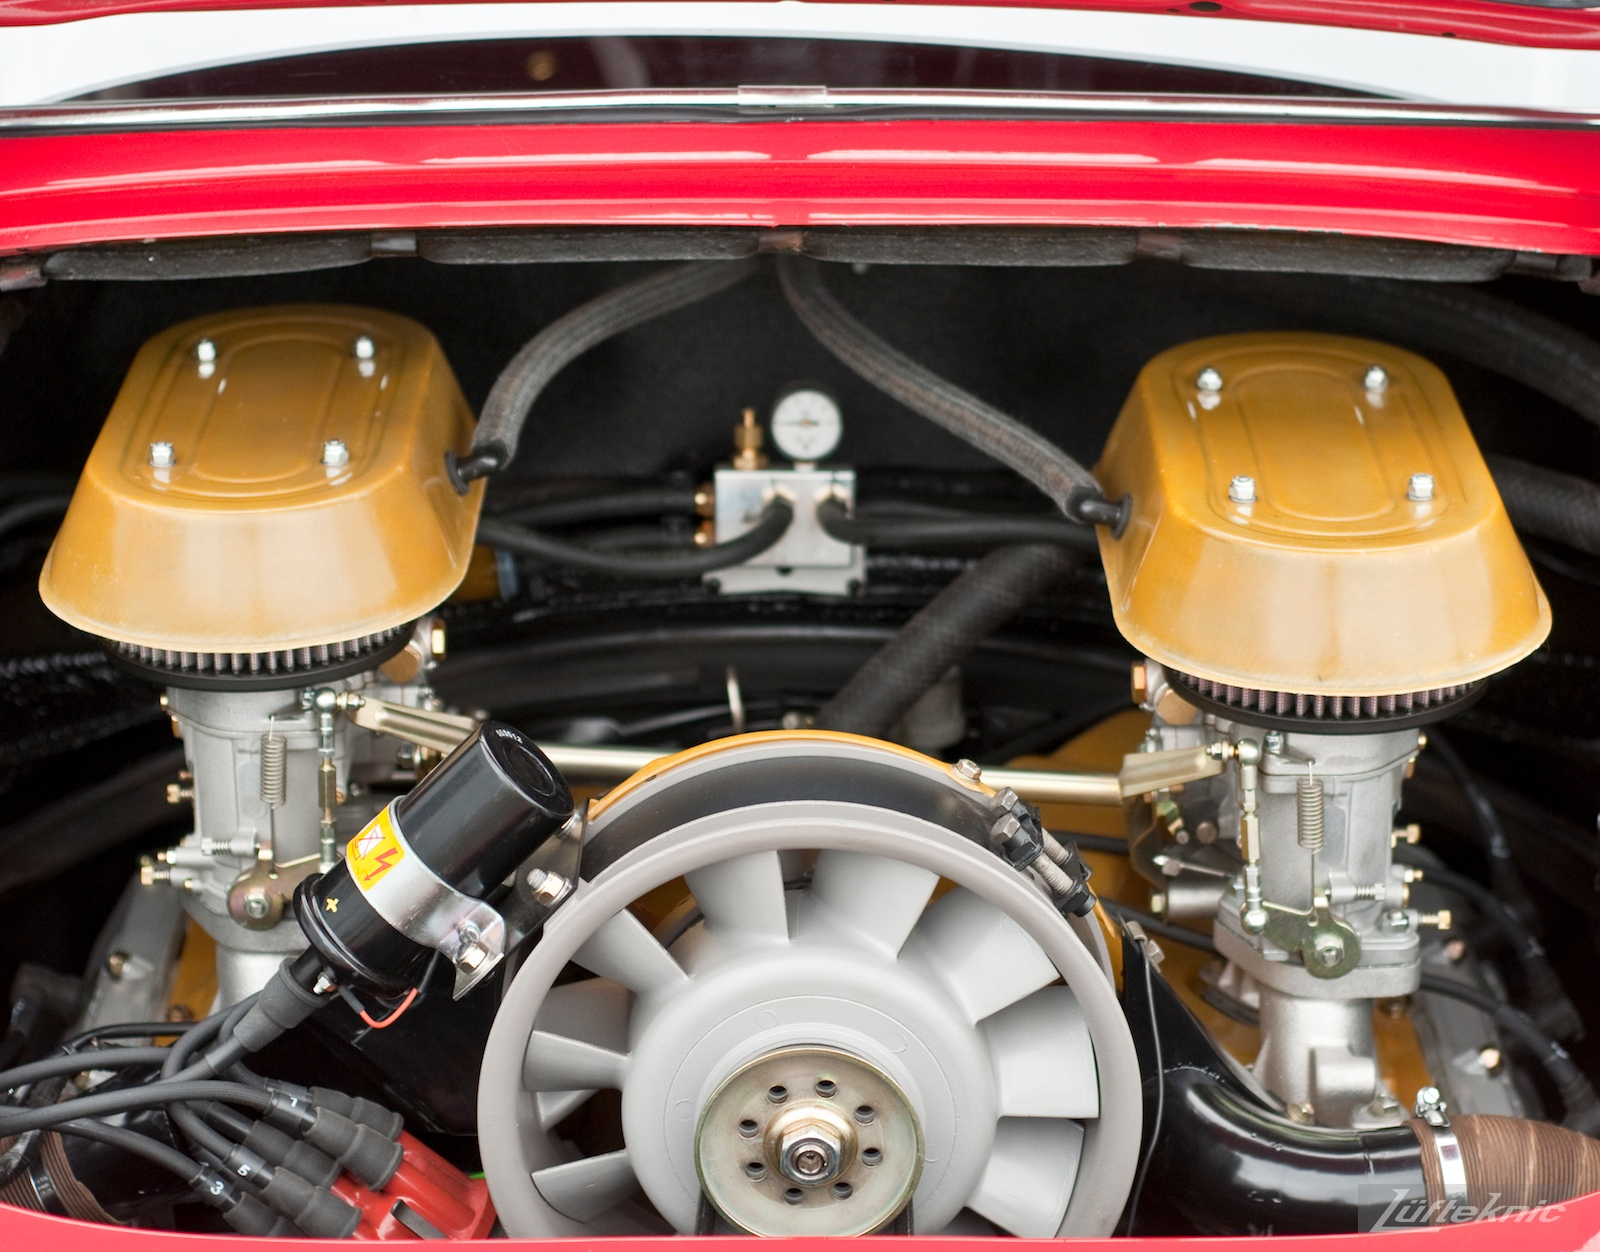 3.0 911SC engine backdated with period pieces and PMO carburetors.